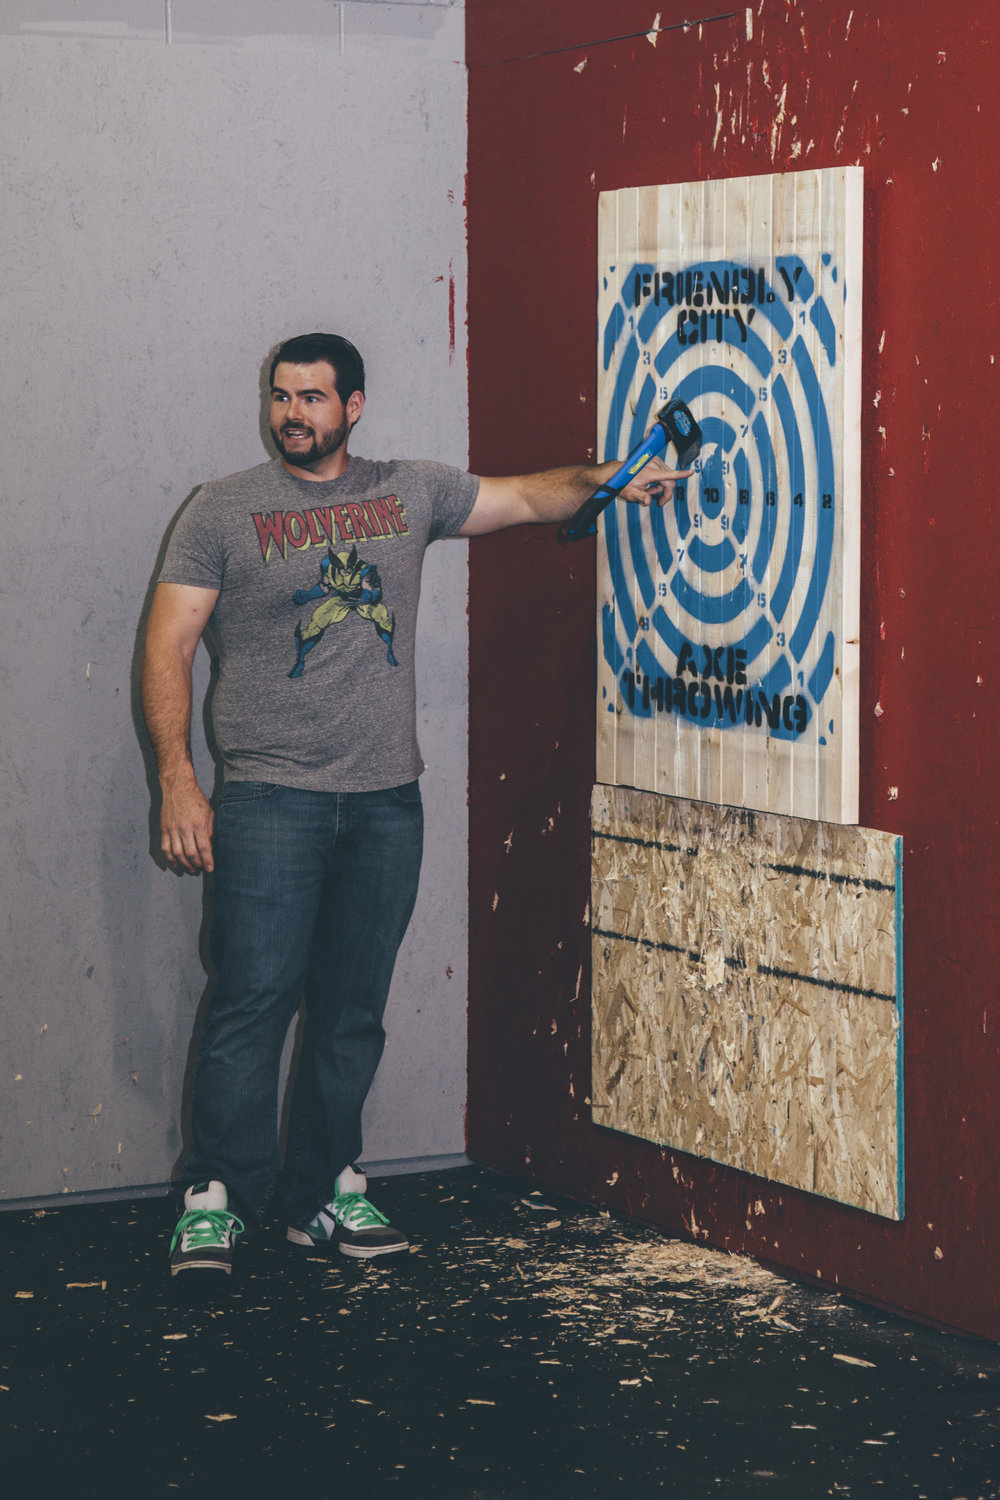 axe throwing-30.jpg